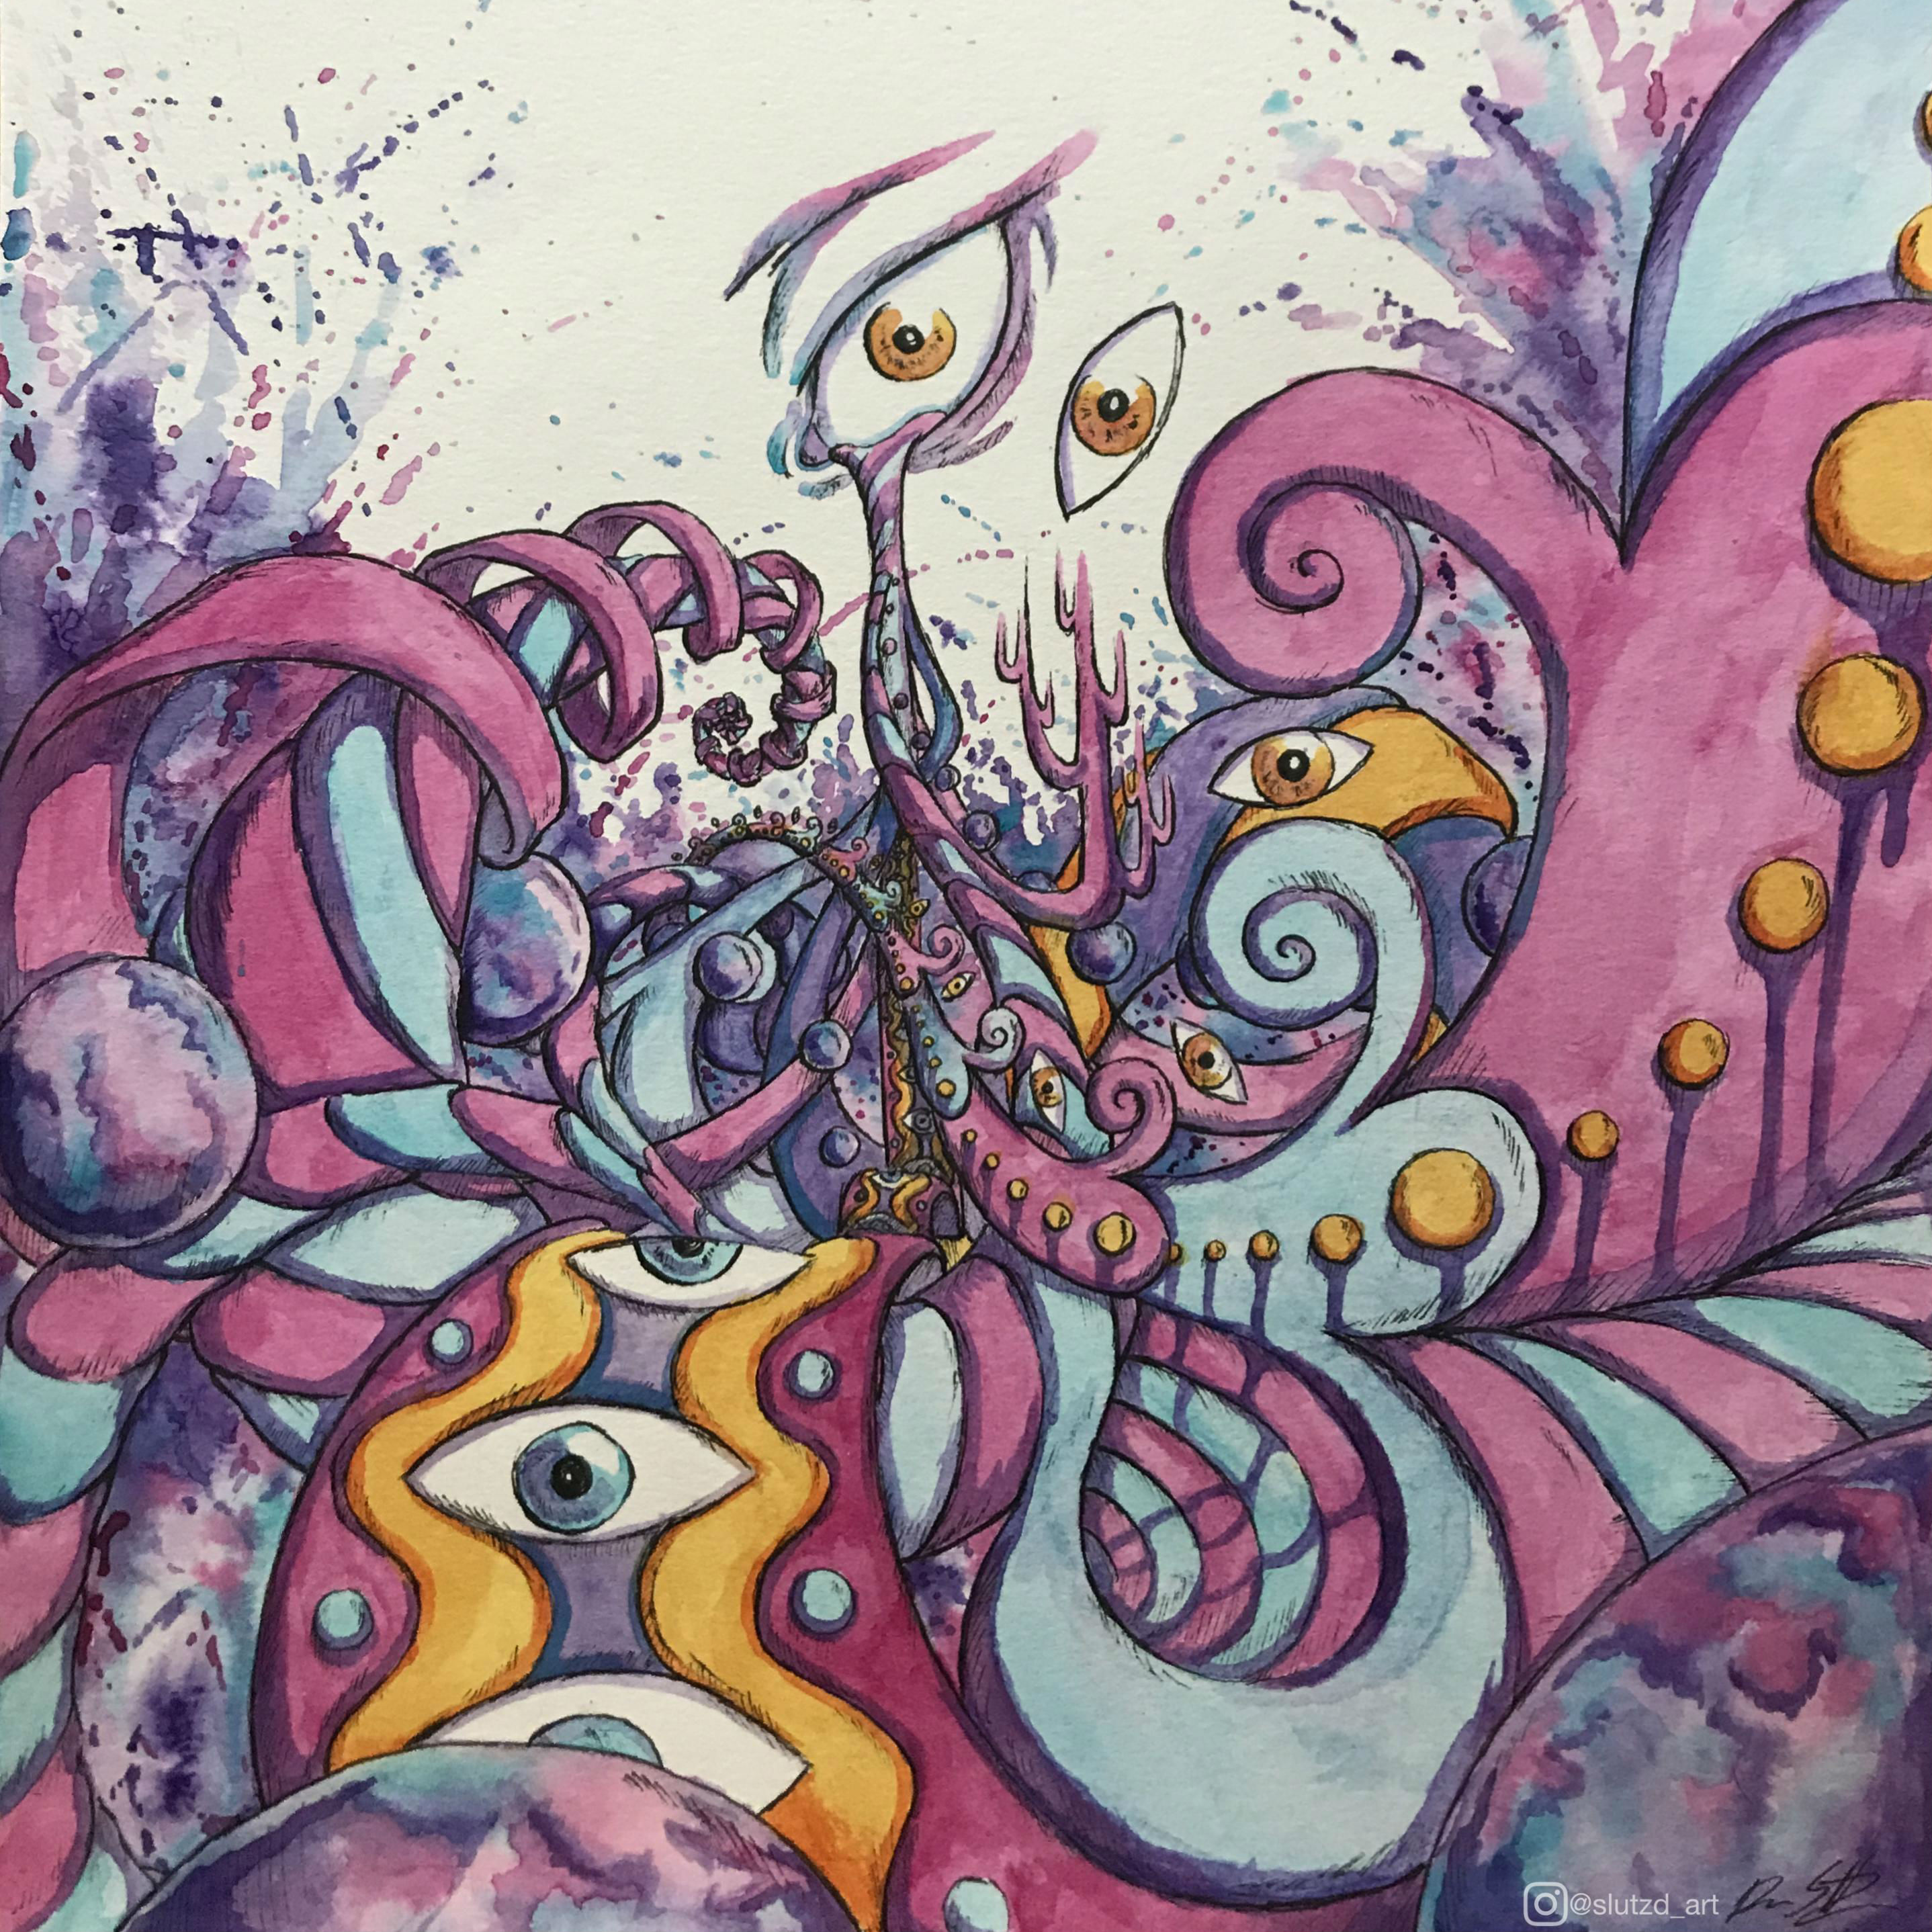 hallucinations and the psychedelic